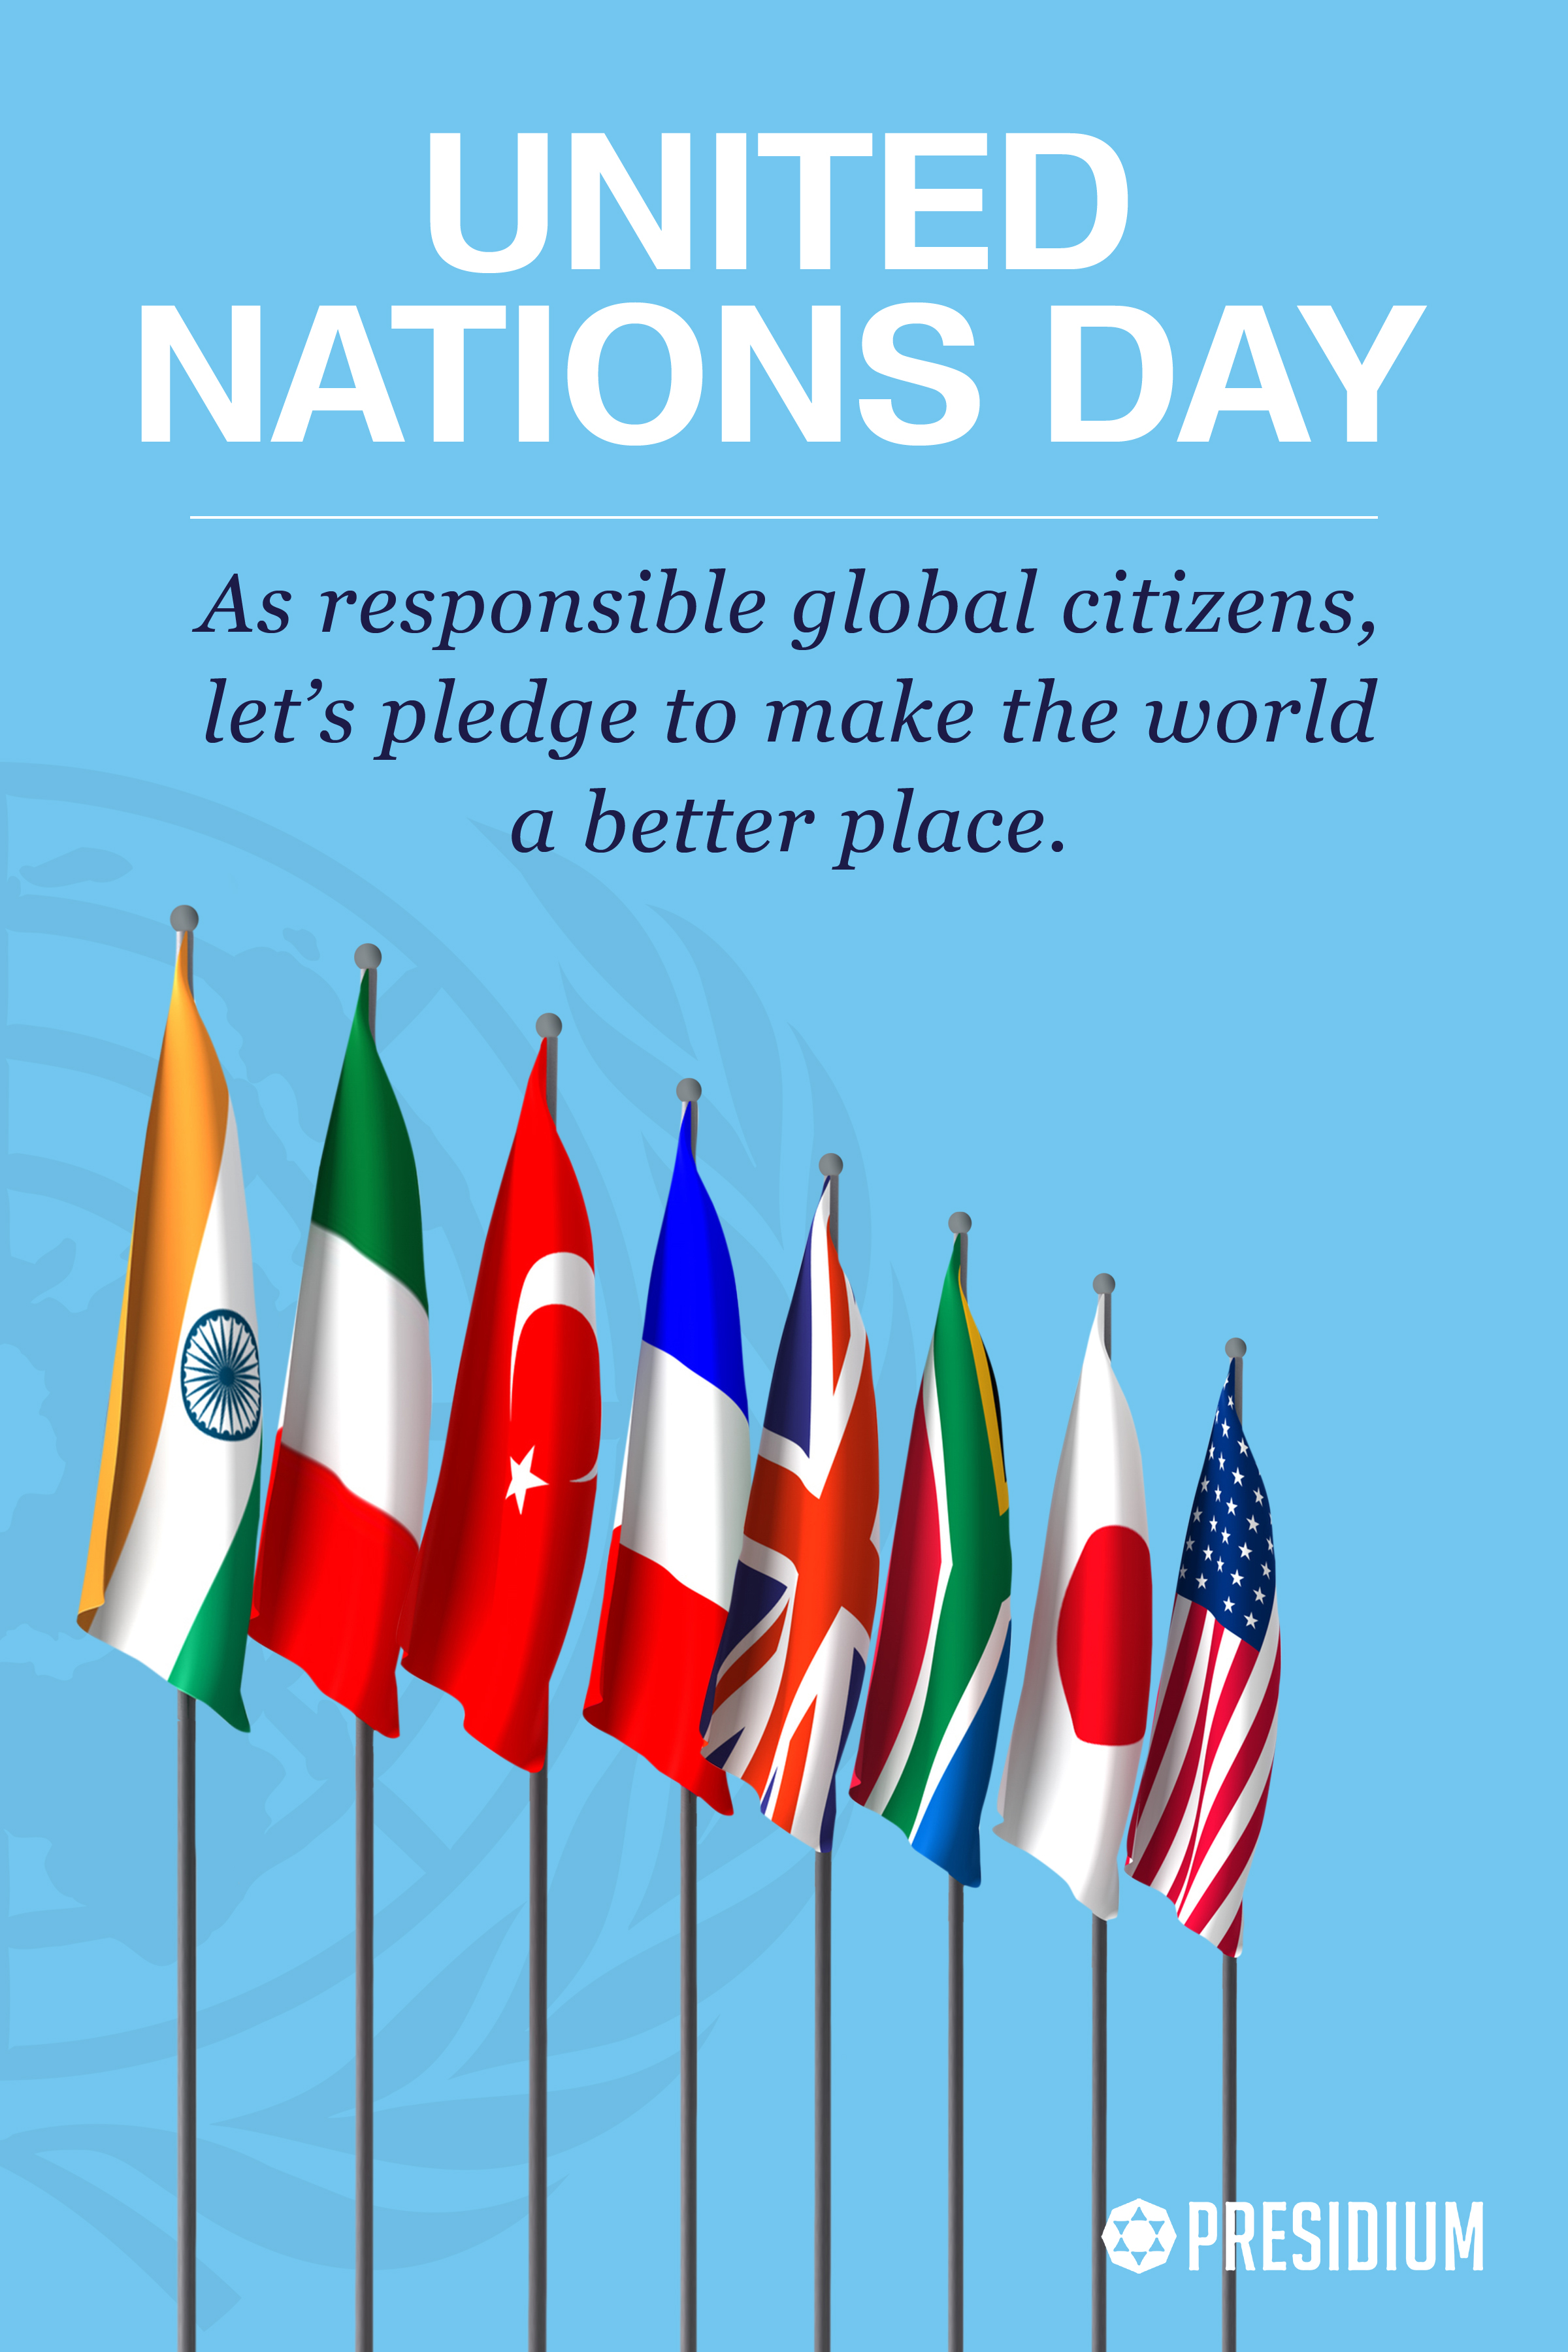 UNITED NATIONS DAY: CELEBRATING THE AGENT OF CHANGE & PEACE